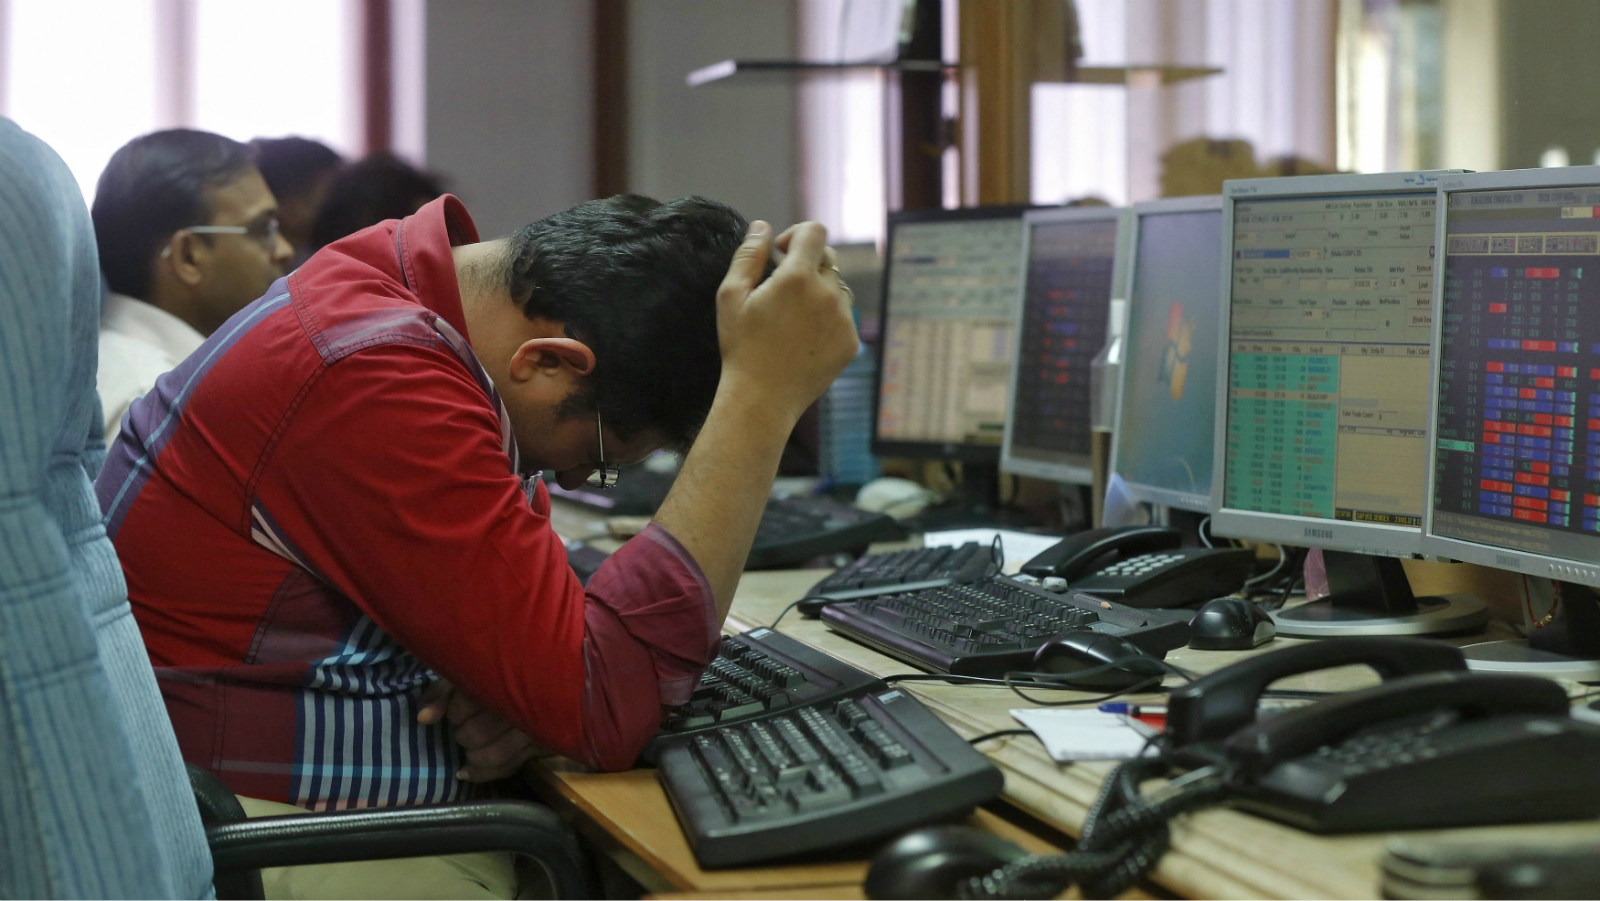 A broker reacts while trading at his computer terminal at a stock brokerage firm in Mumbai, India, February 26, 2016. Indian bonds, shares and the rupee gained on Friday after a key government report on the economy was seen as calling for fiscal prudence and stable inflation, while also acknowledging risks to the growth outlook.